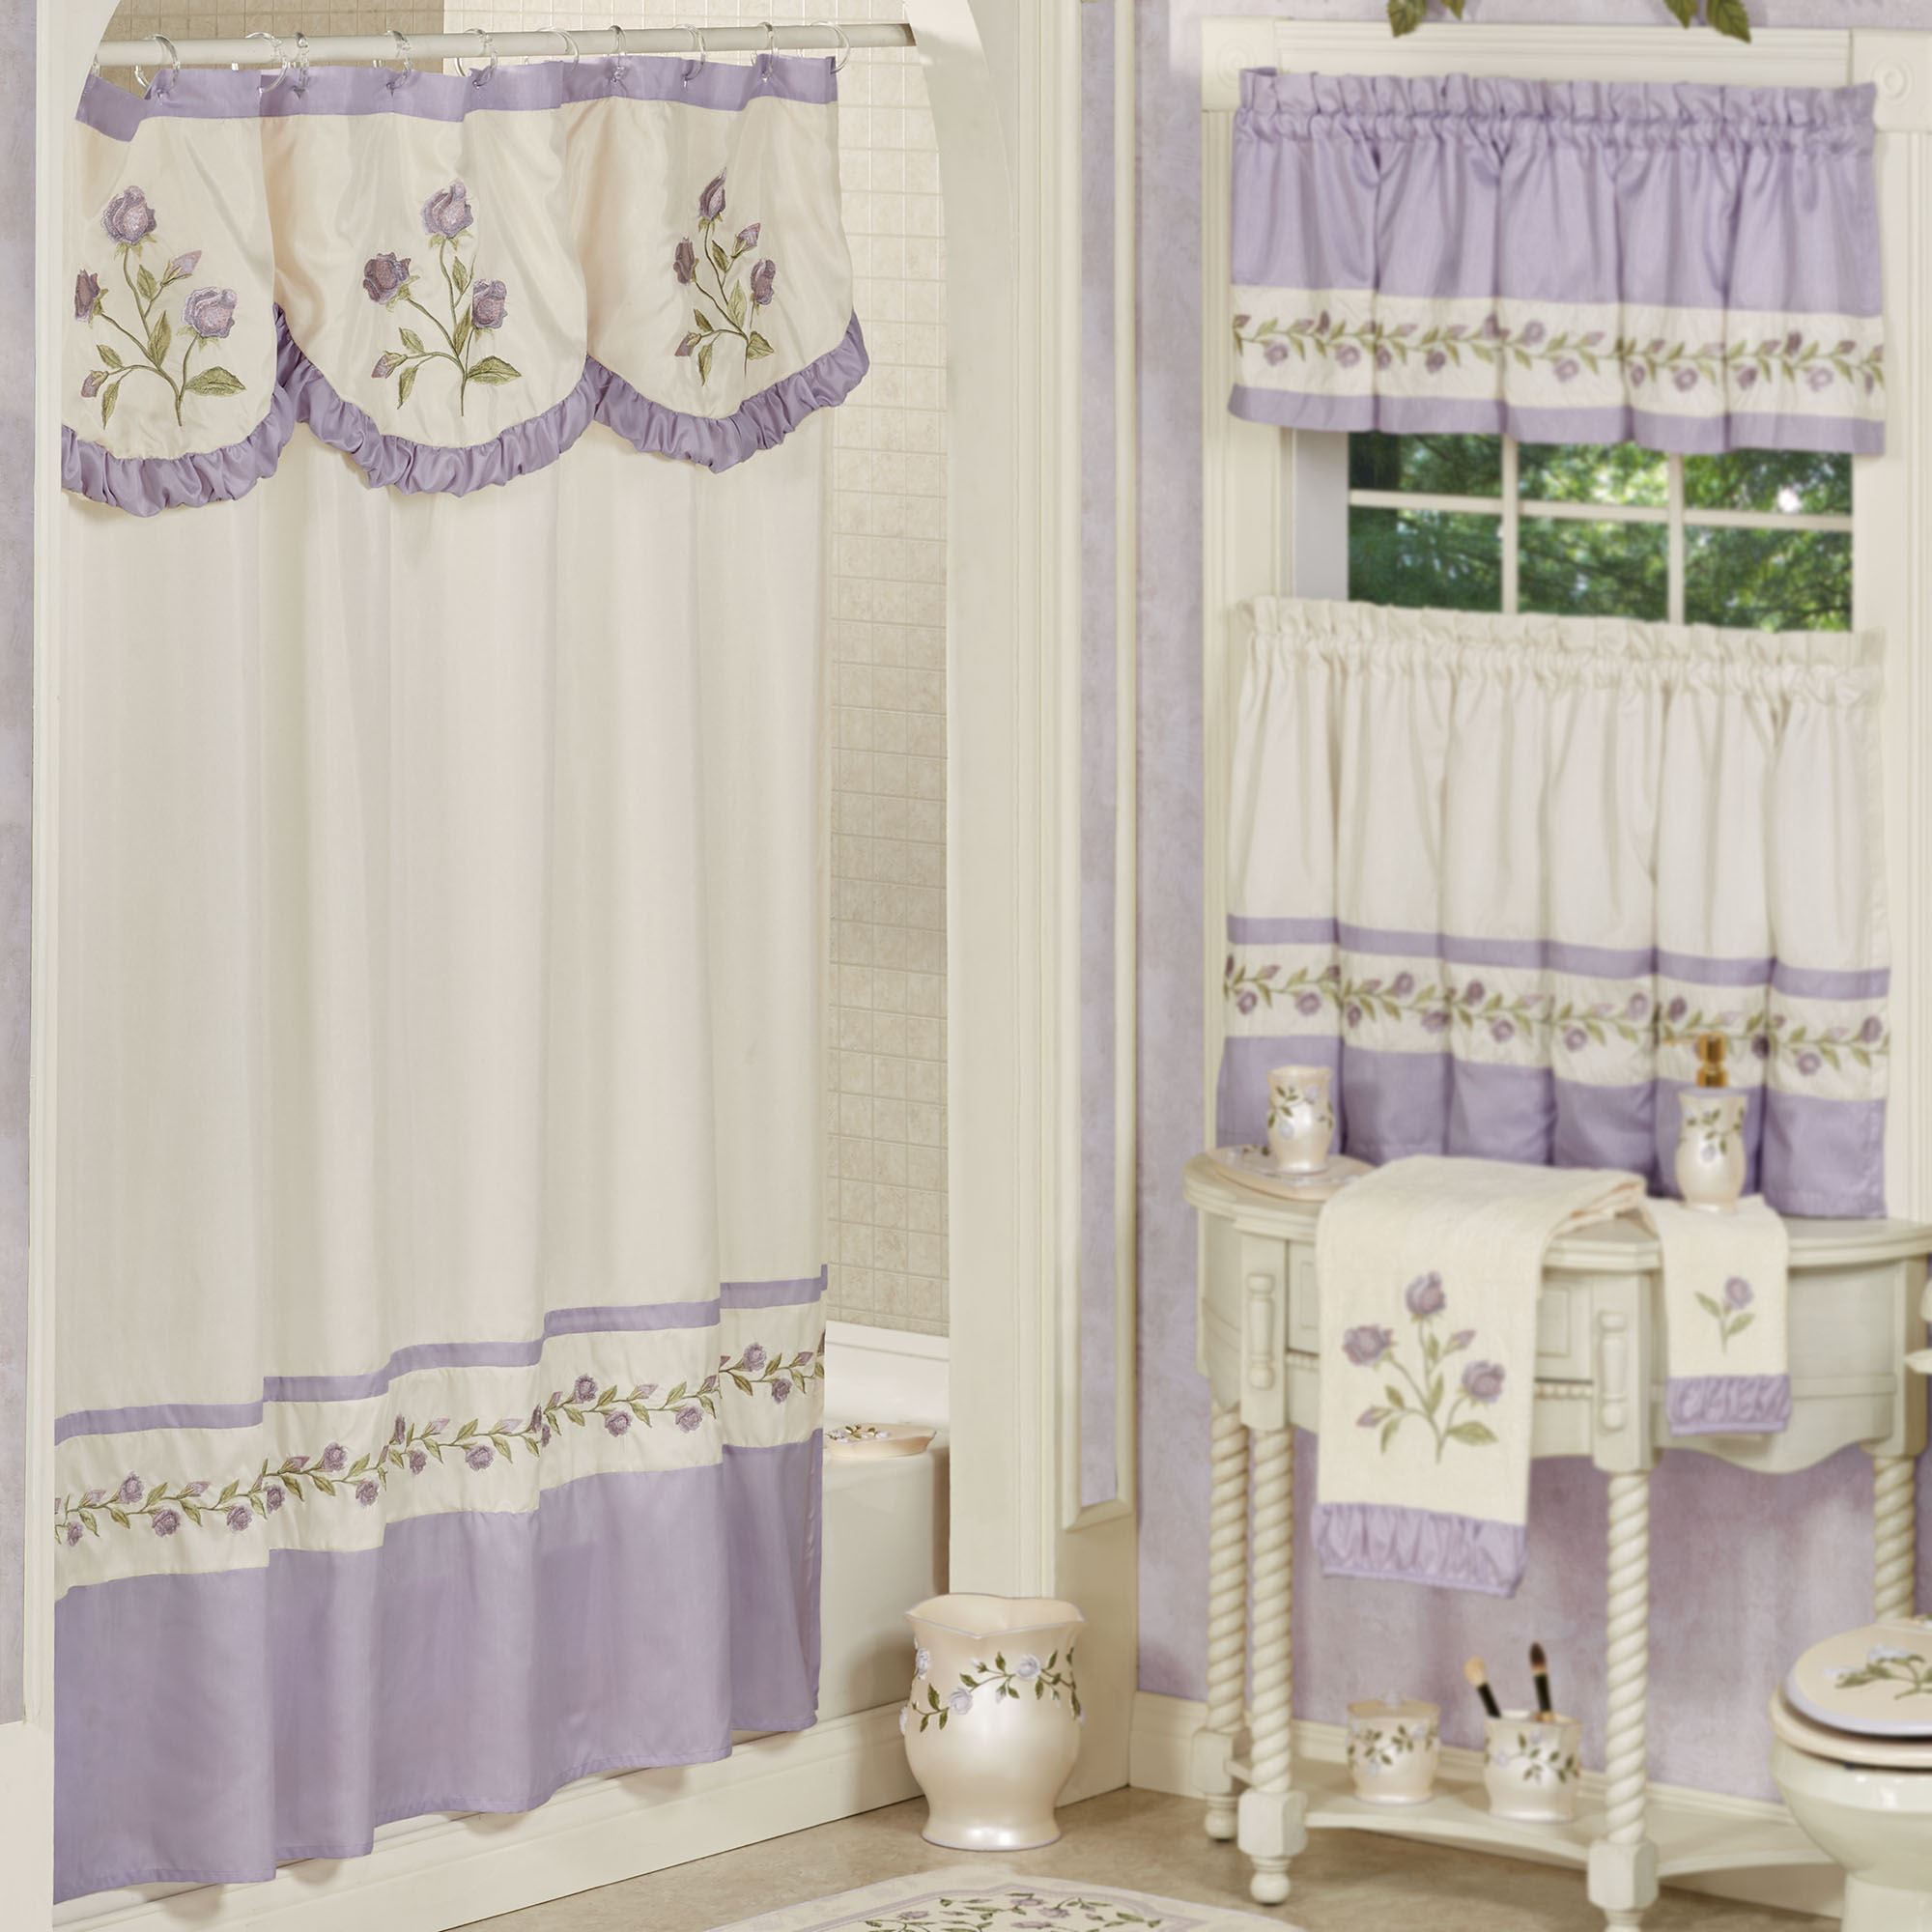 Lavender Shower Curtains Lavender Rose Embroidered Floral Shower Curtain And Accessories